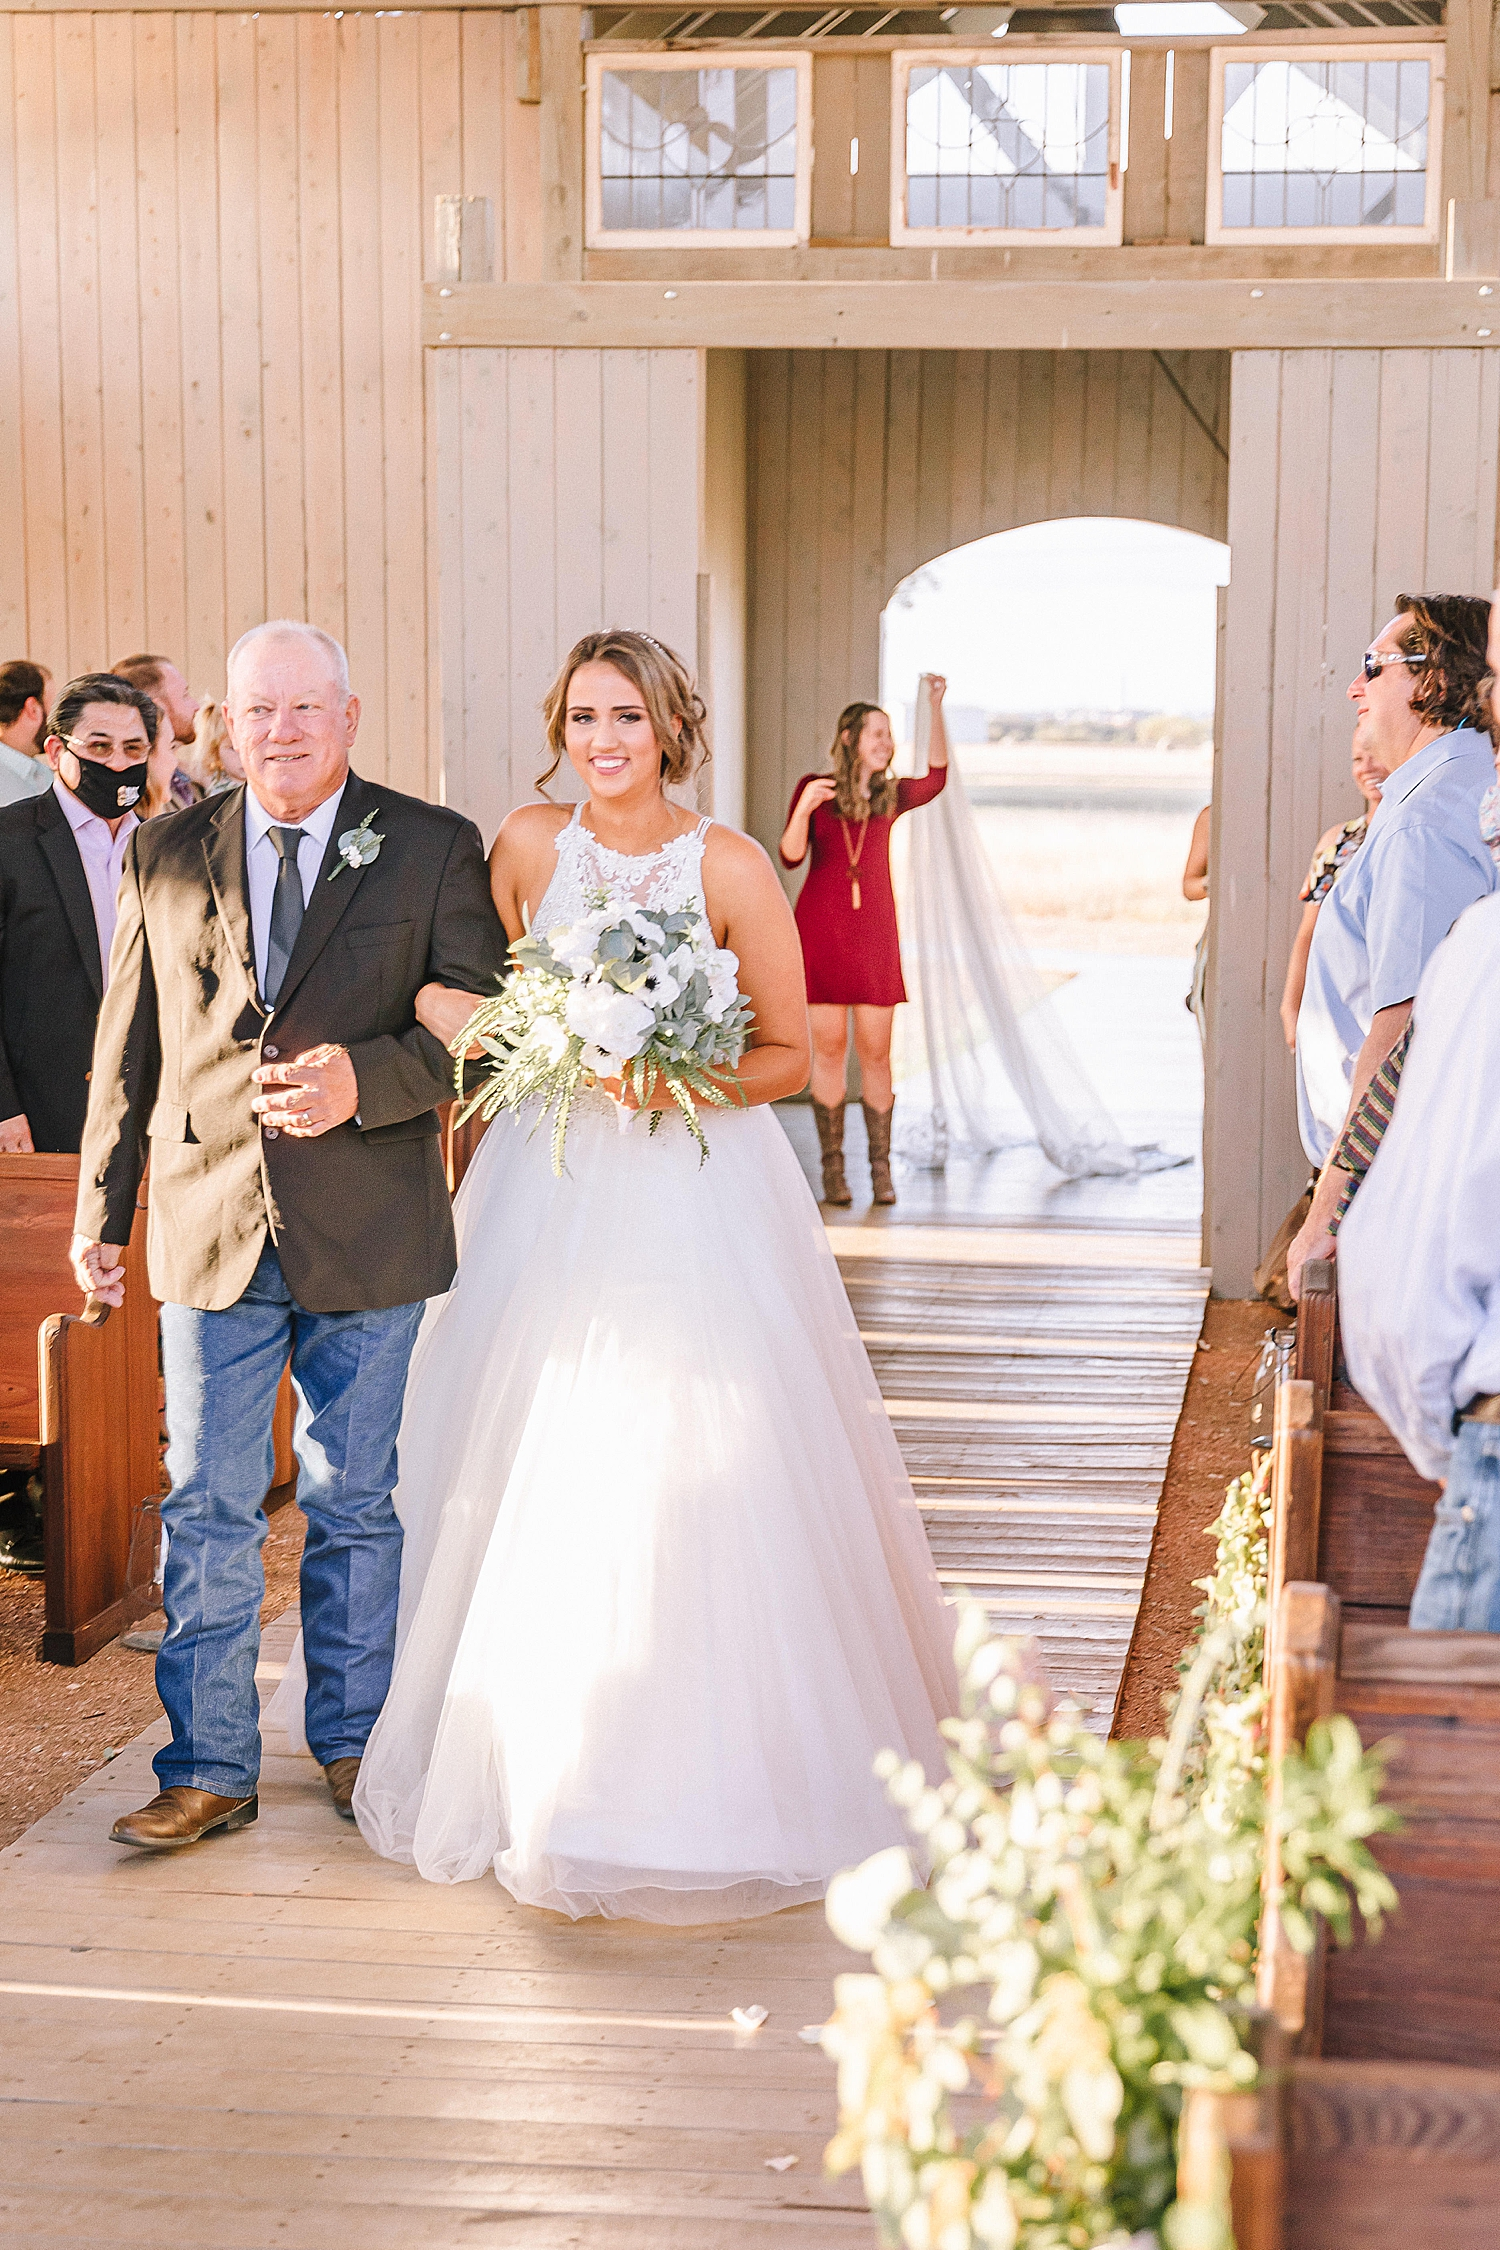 Allen-Farmhaus-New-Braunfels-Wedding-Carly-Barton-Photography_0066.jpg